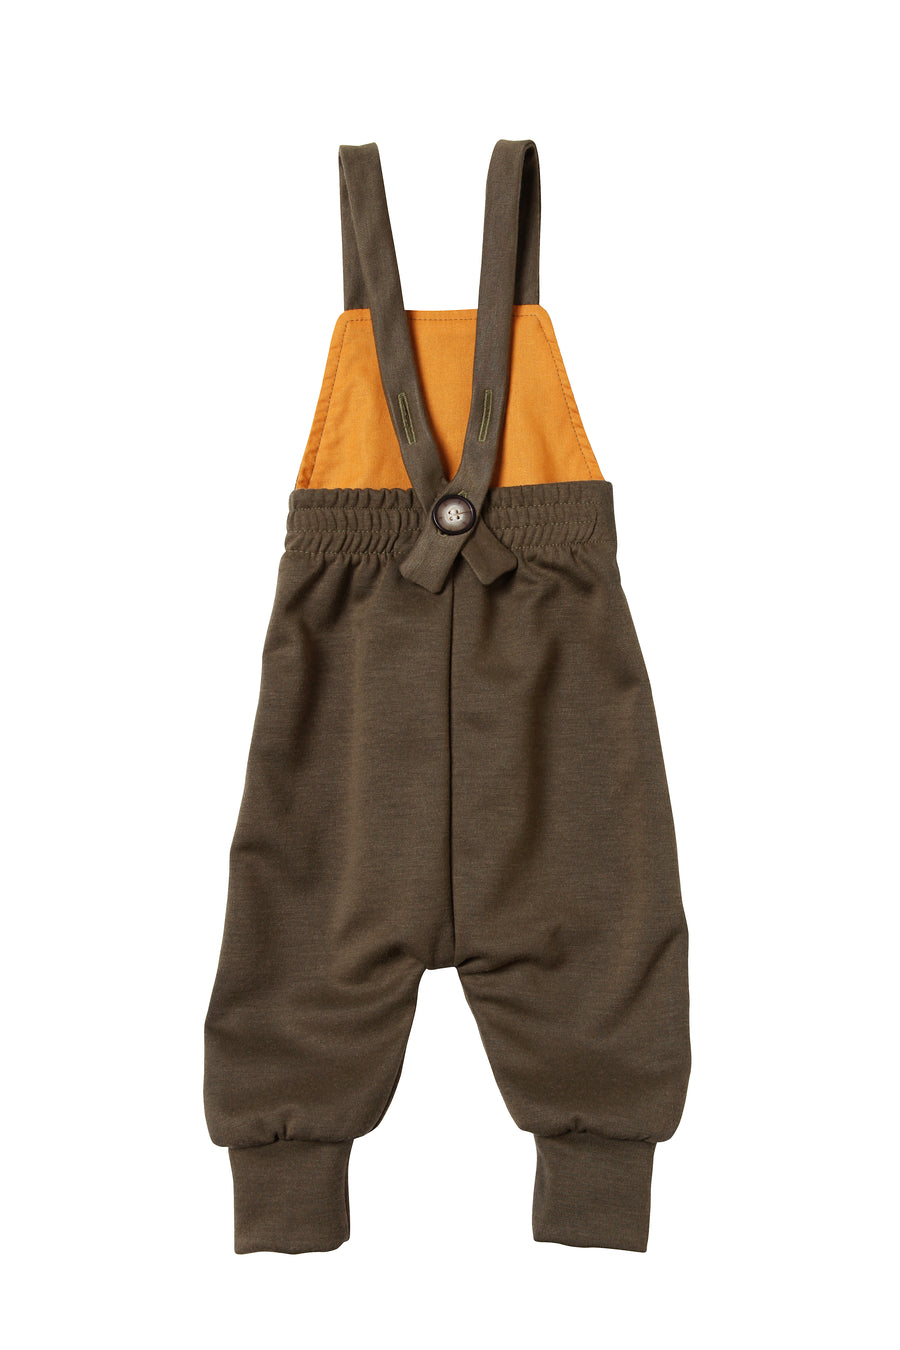 Winston Overalls - Moose & Finch